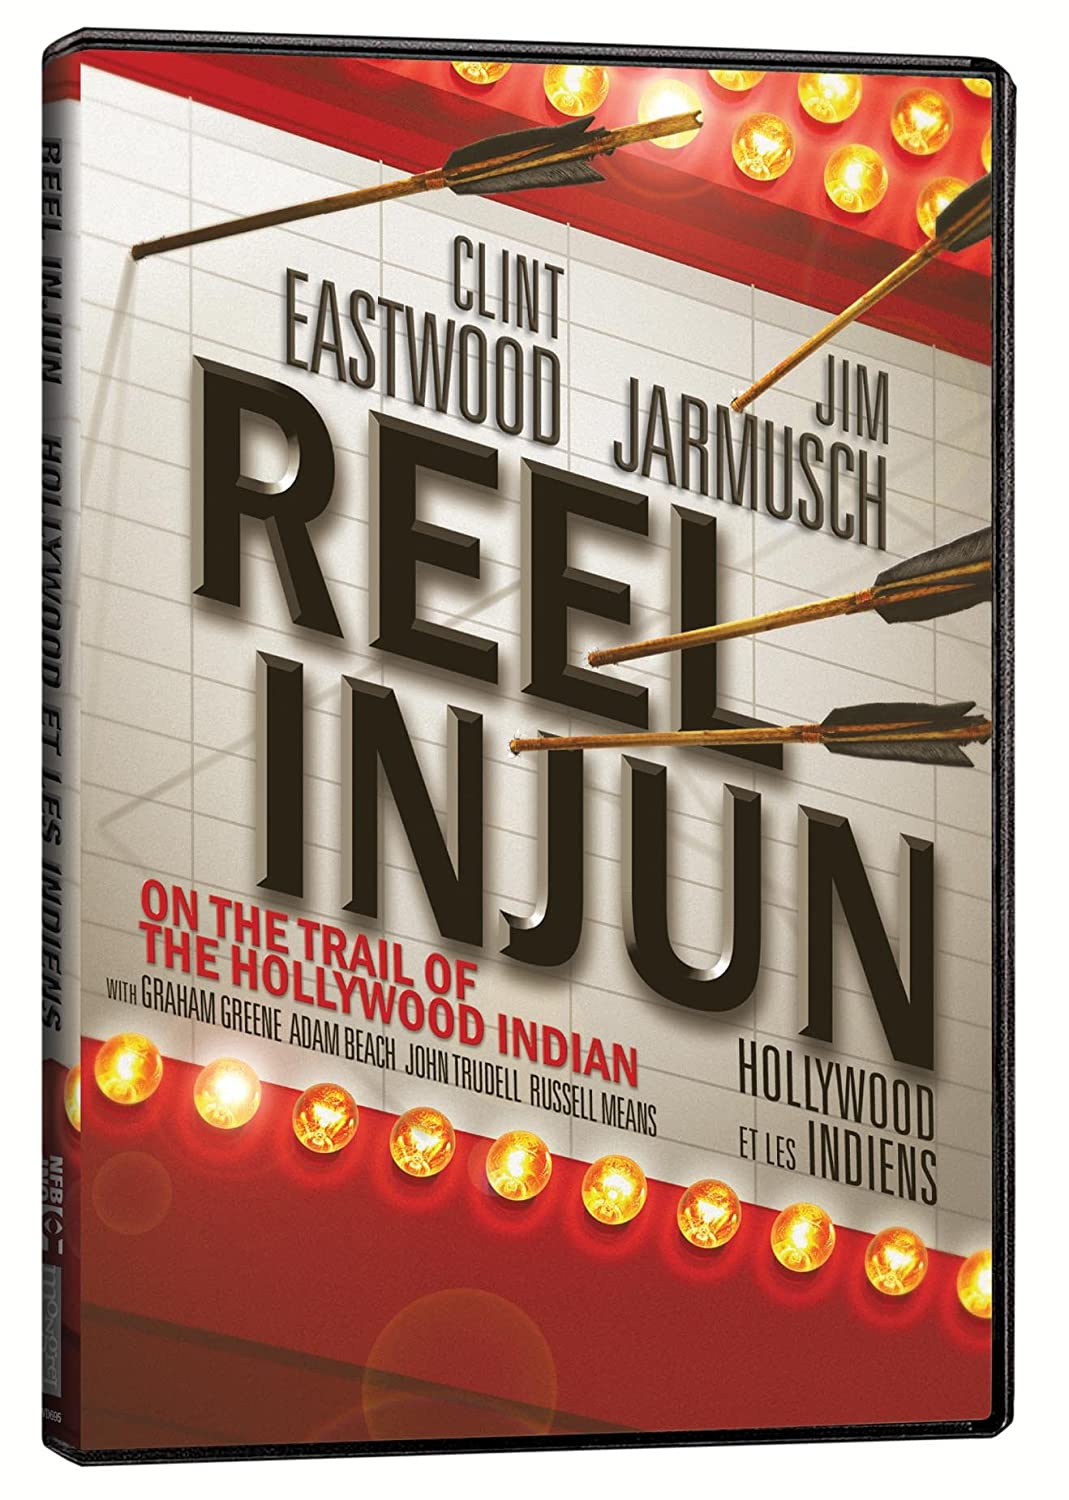 Reel Injun cover